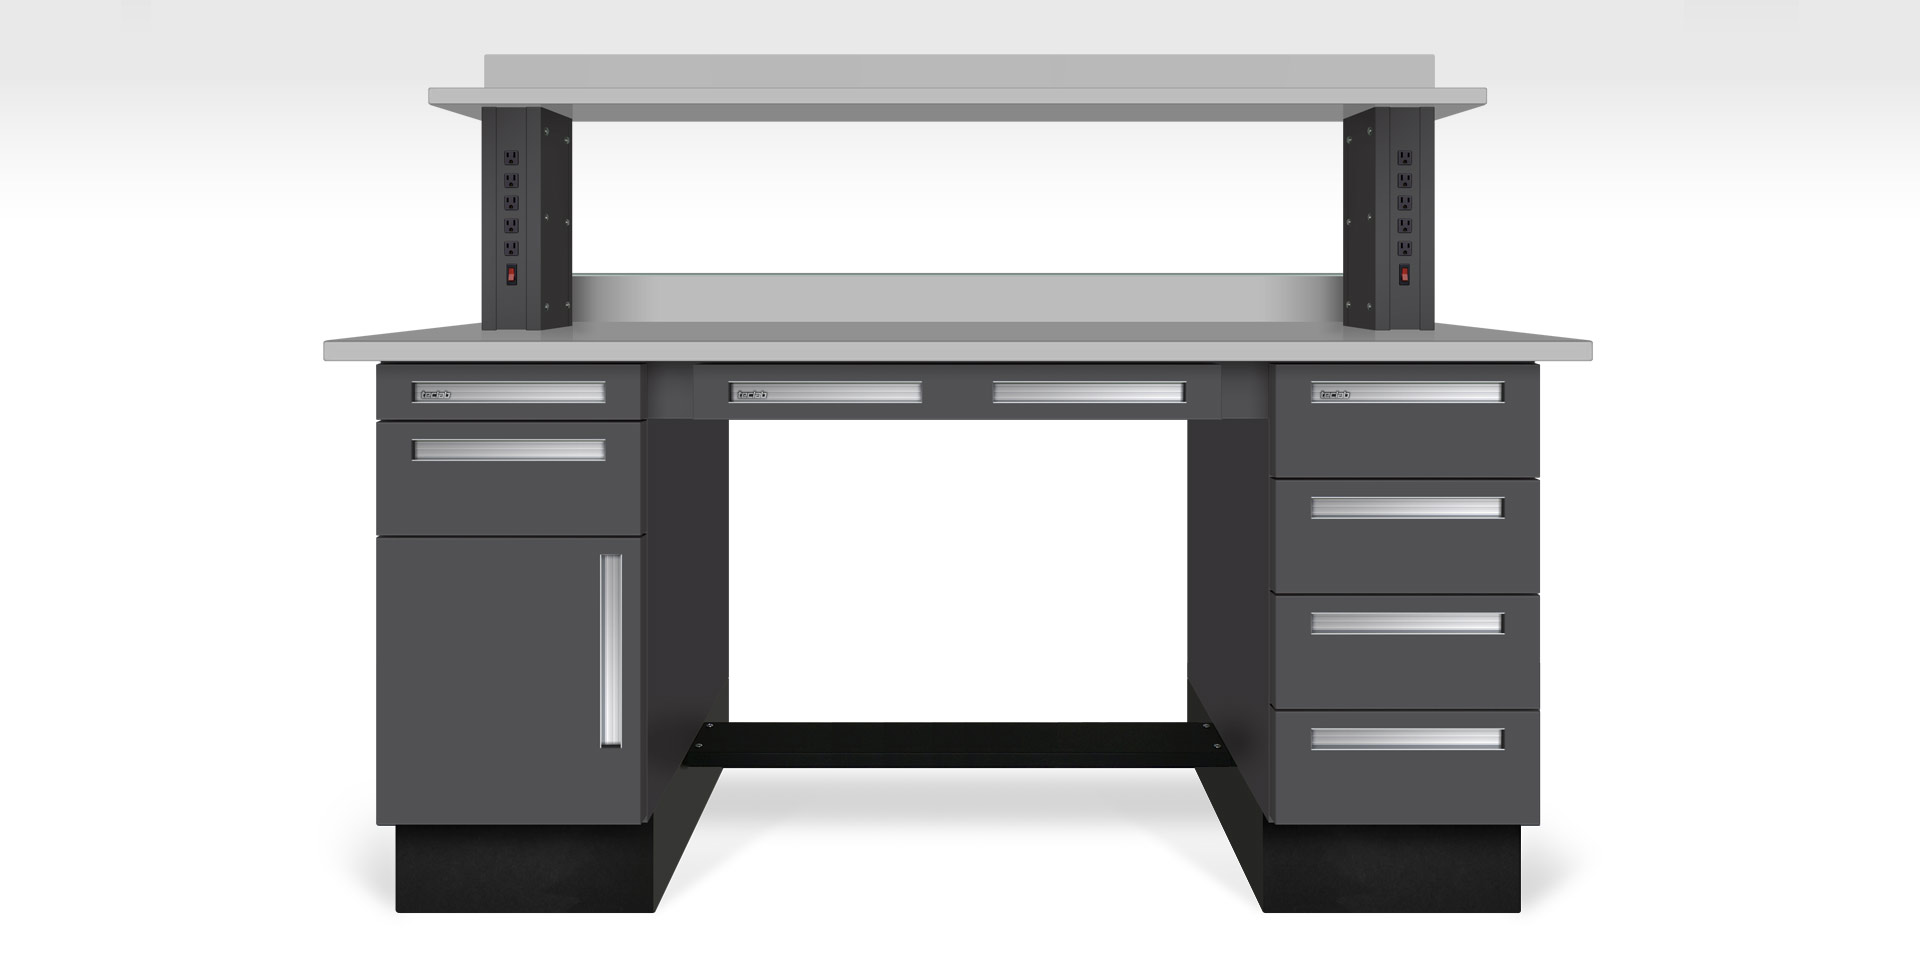 duty lowe canada more tables benches wood decor workbench with metal solution garage drawer steel drawers heavy storage ca s work home